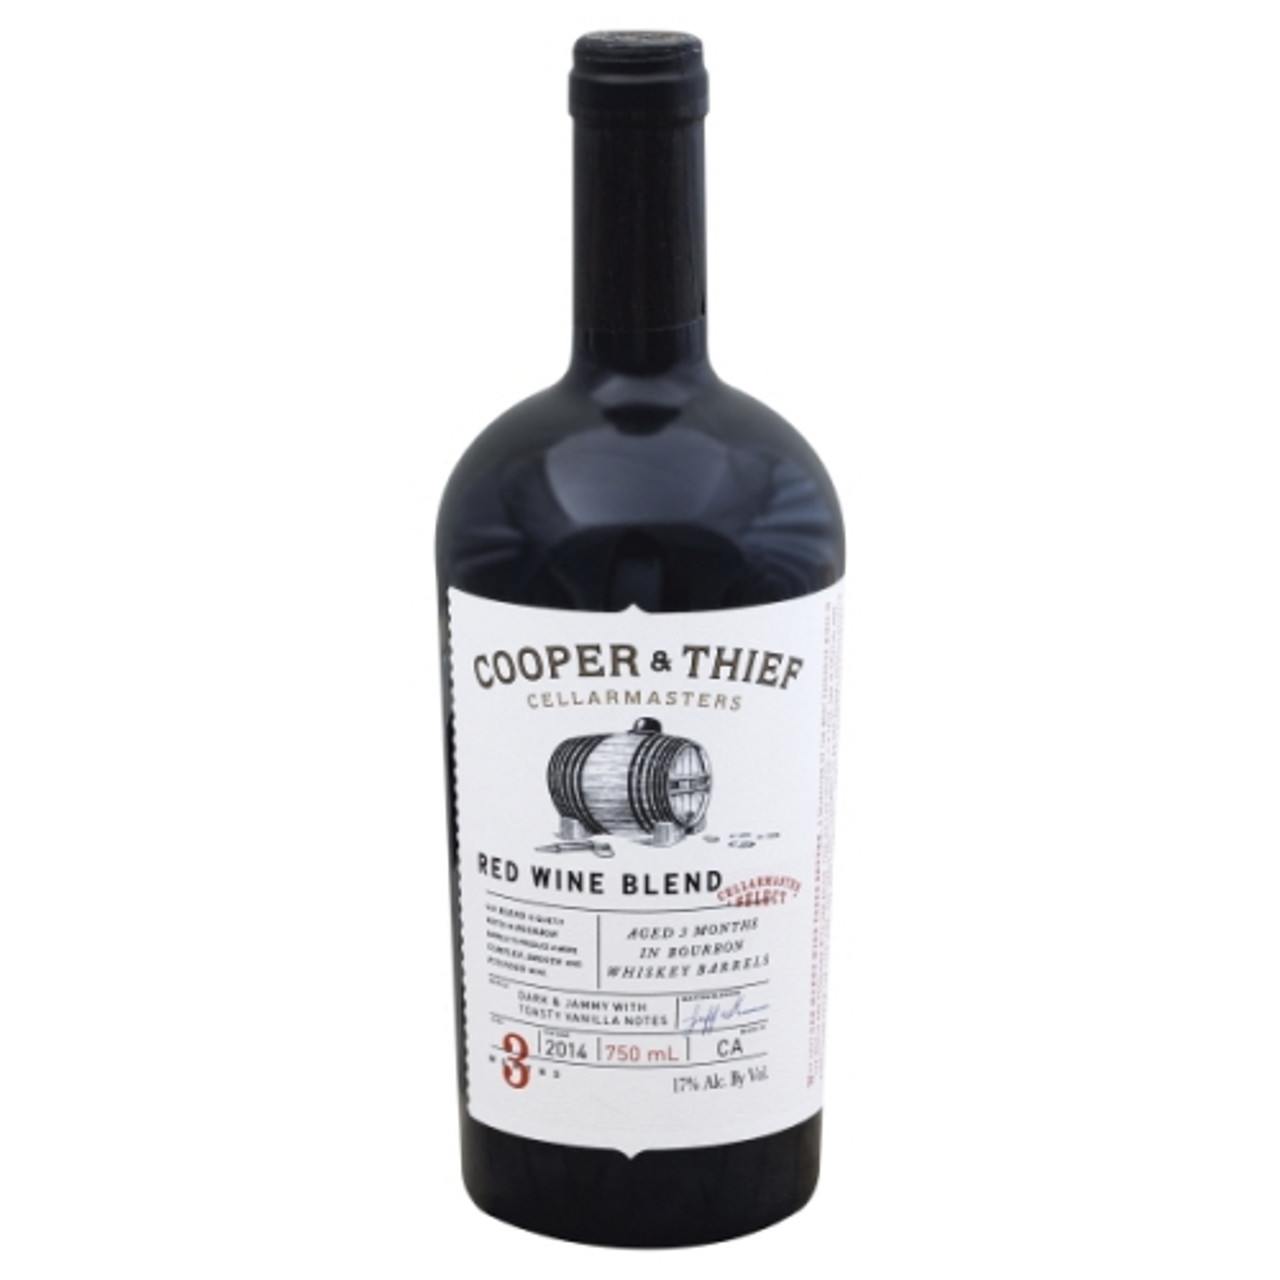 Cooper & Thief Red Blend Bourbon Barrel Aged